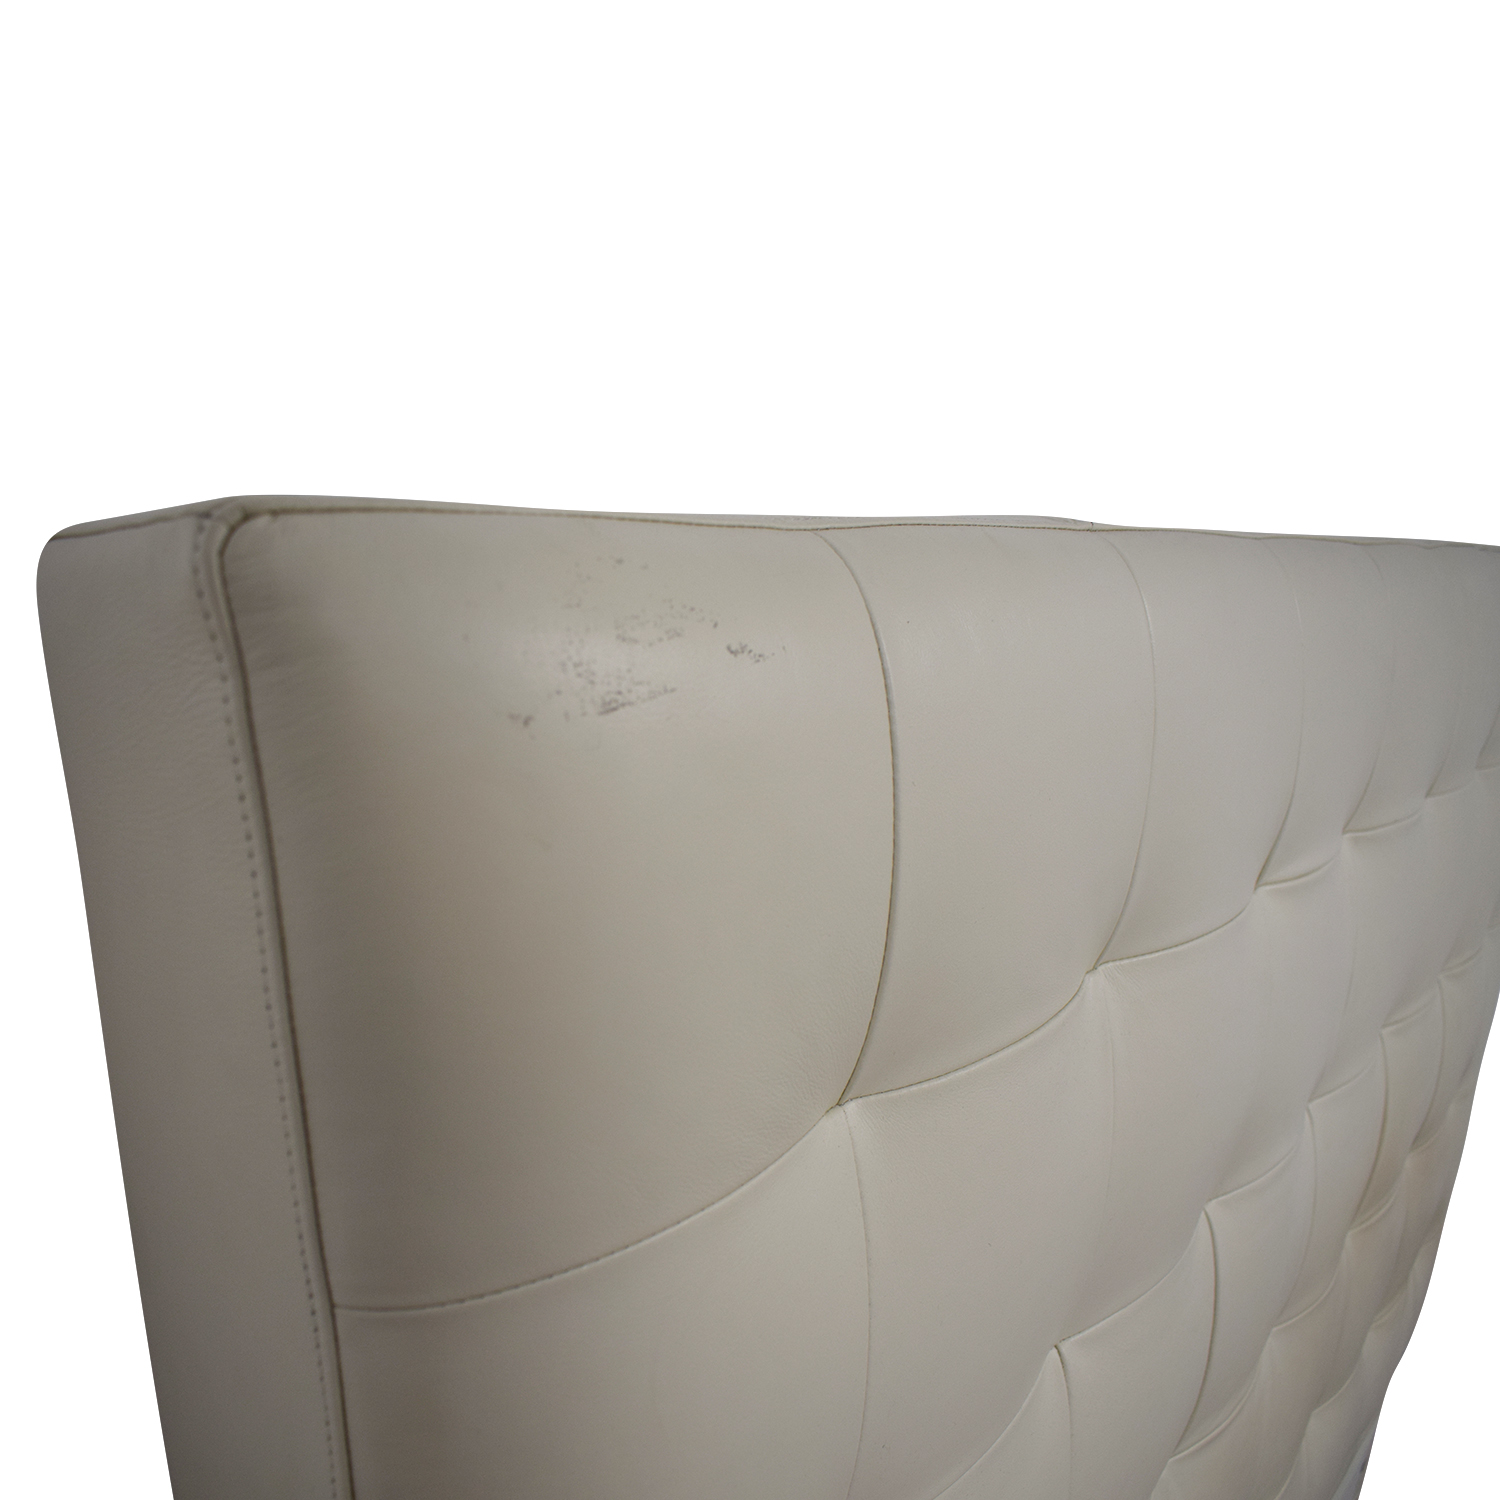 West Elm West Elm White Leather Tufted Queen Headboard second hand